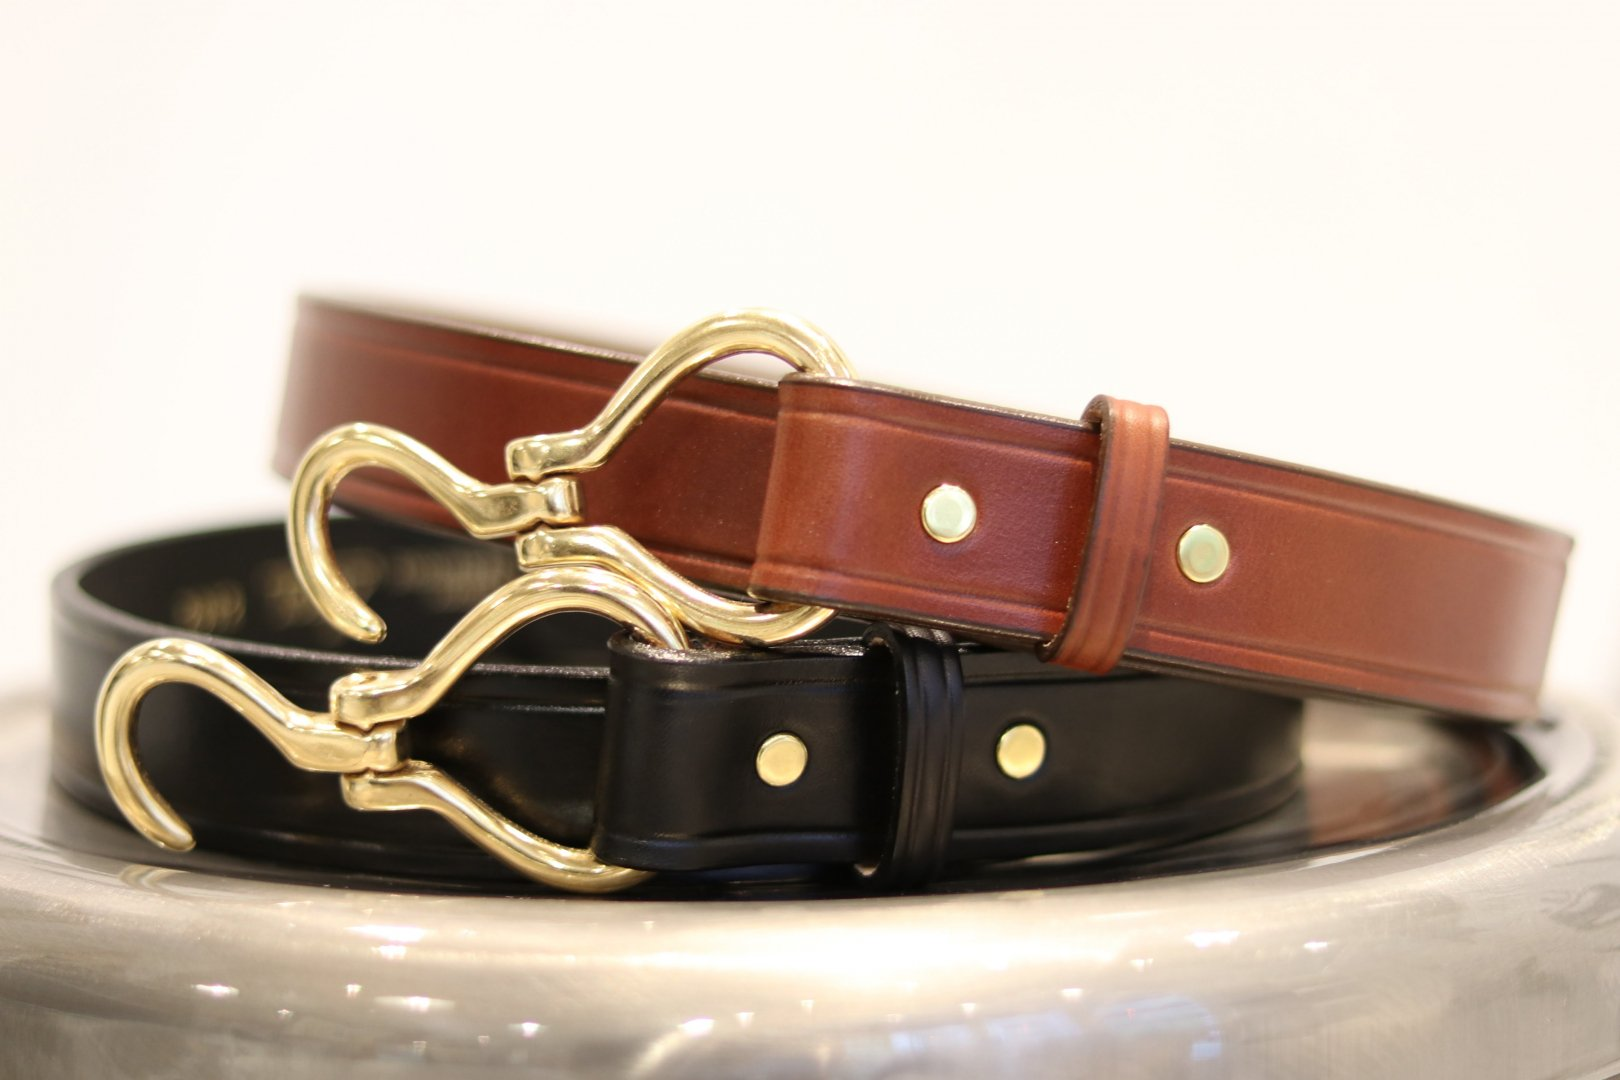 <img class='new_mark_img1' src='https://img.shop-pro.jp/img/new/icons58.gif' style='border:none;display:inline;margin:0px;padding:0px;width:auto;' />TORY LEATHER / HOOF PICK BUCKLE BELT